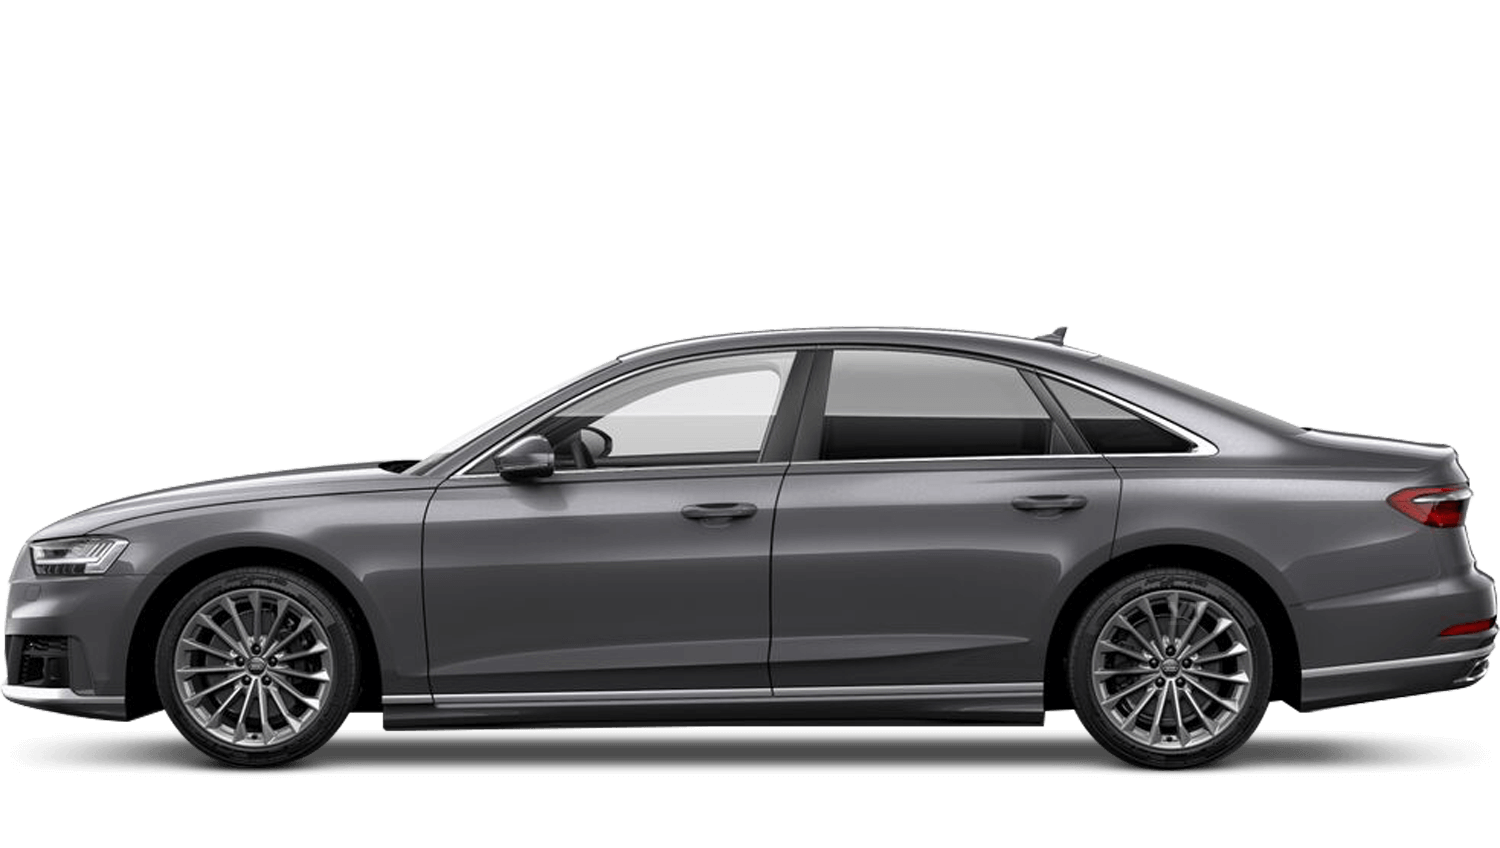 Audi A8 Business Offers